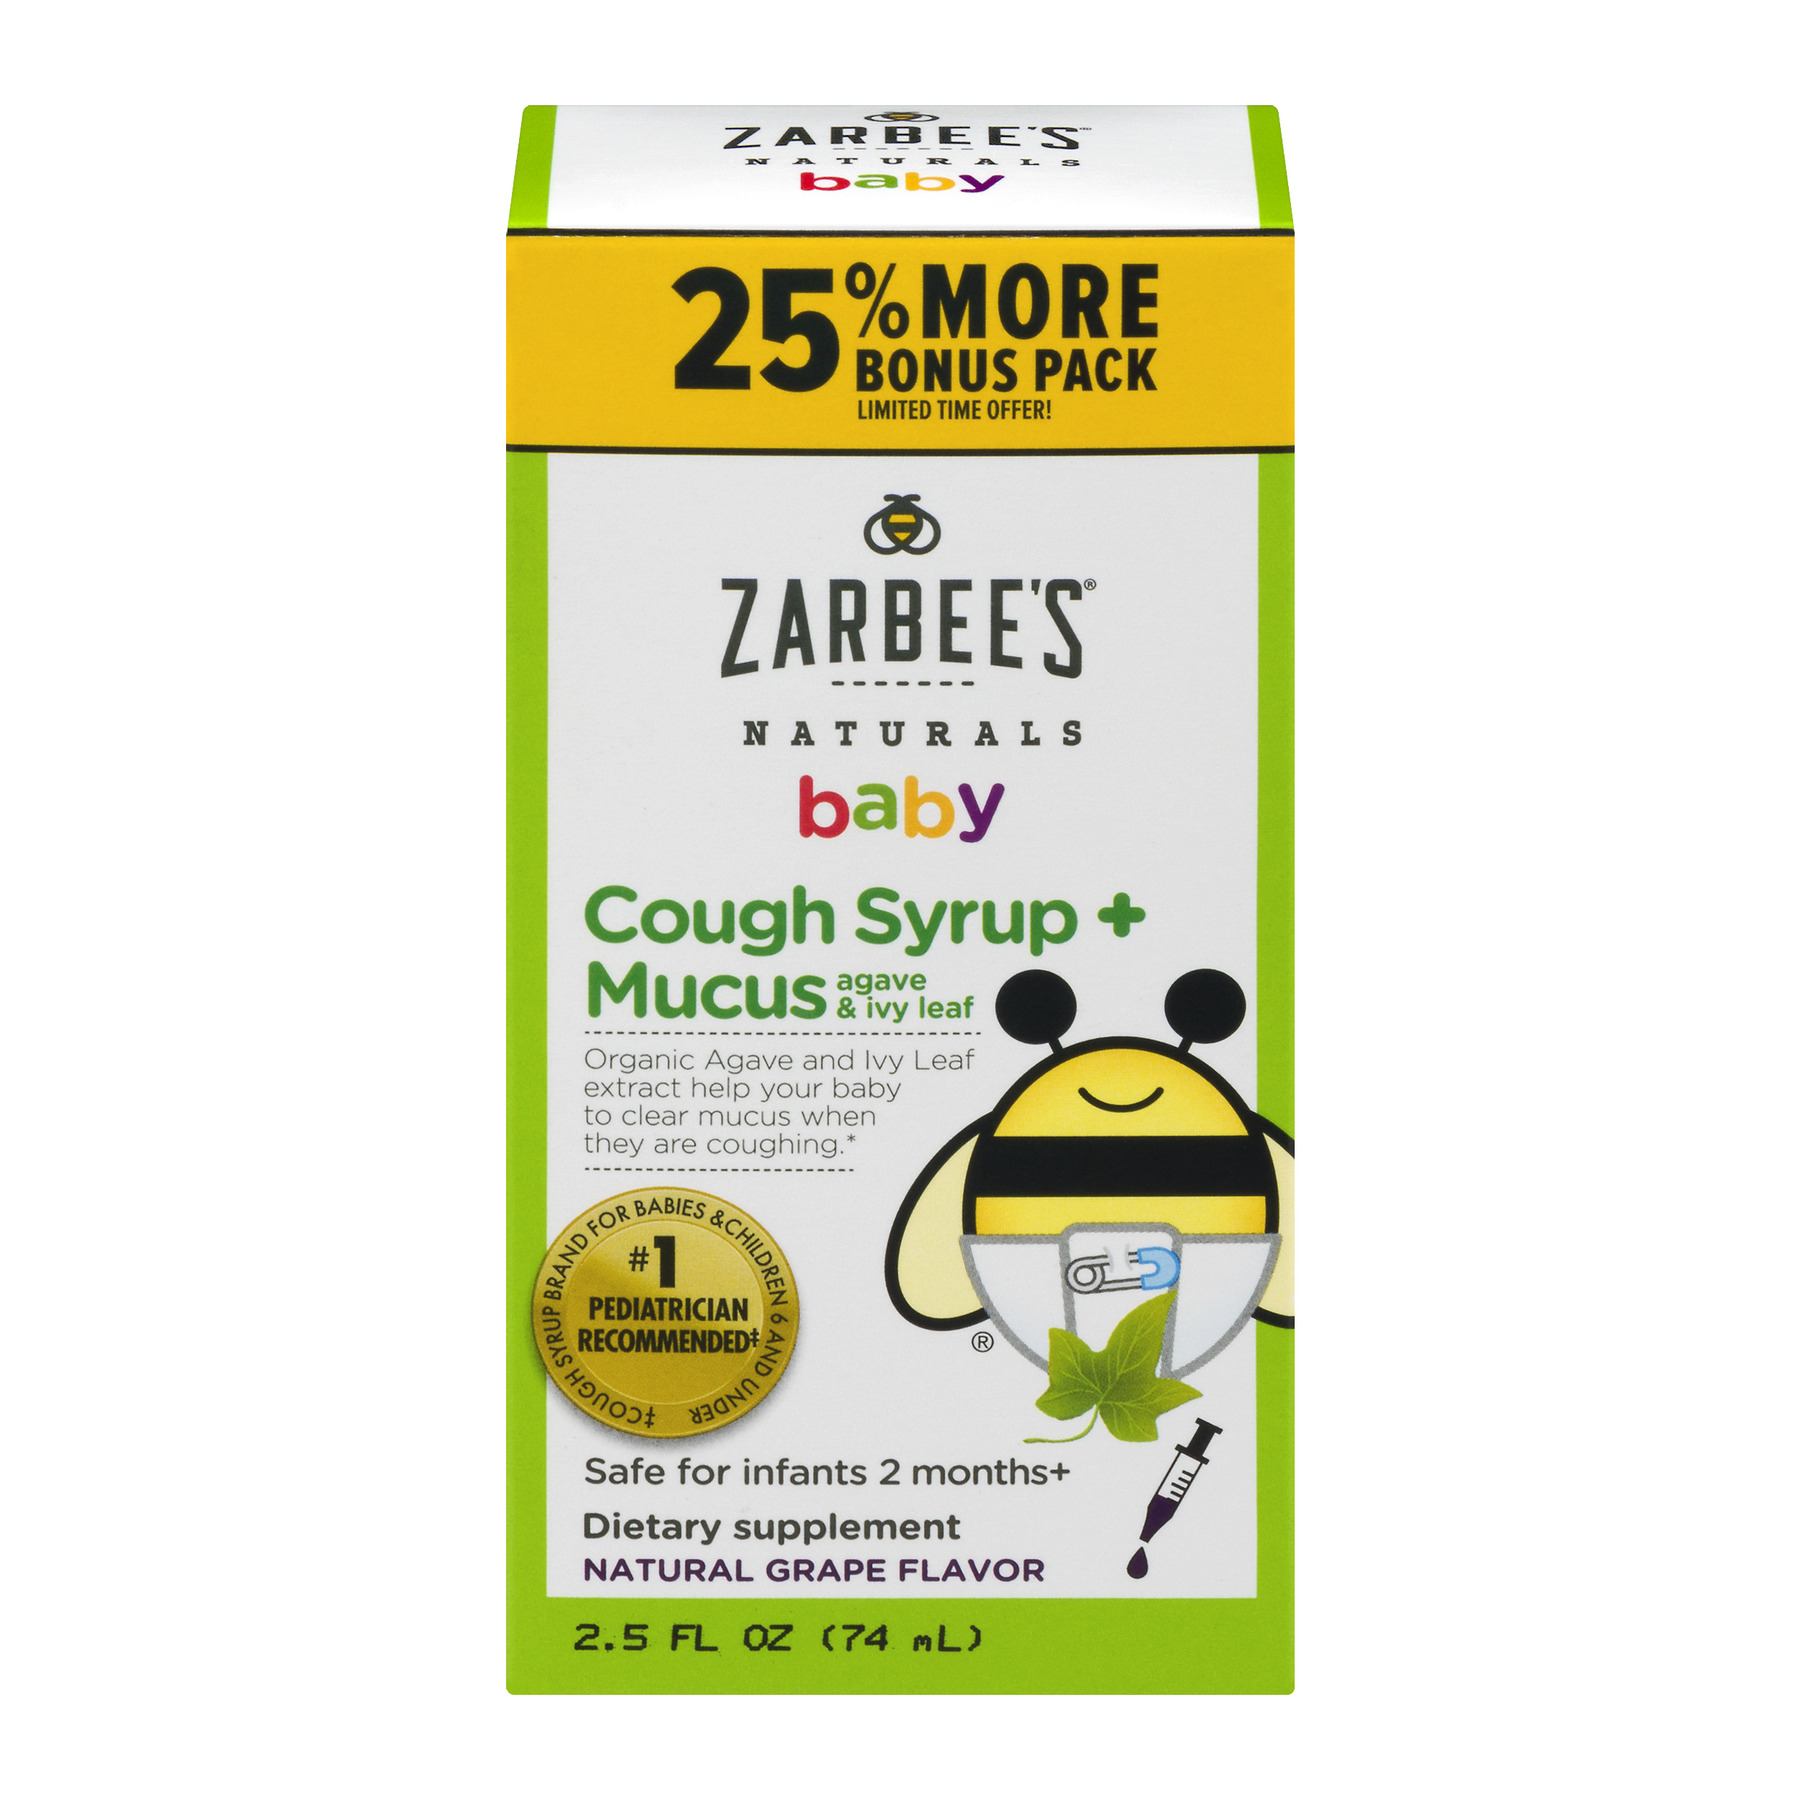 Zarbee's Naturals Baby Natural Grape Flavor Cough Syrup + Mucus, 2.5 fl oz